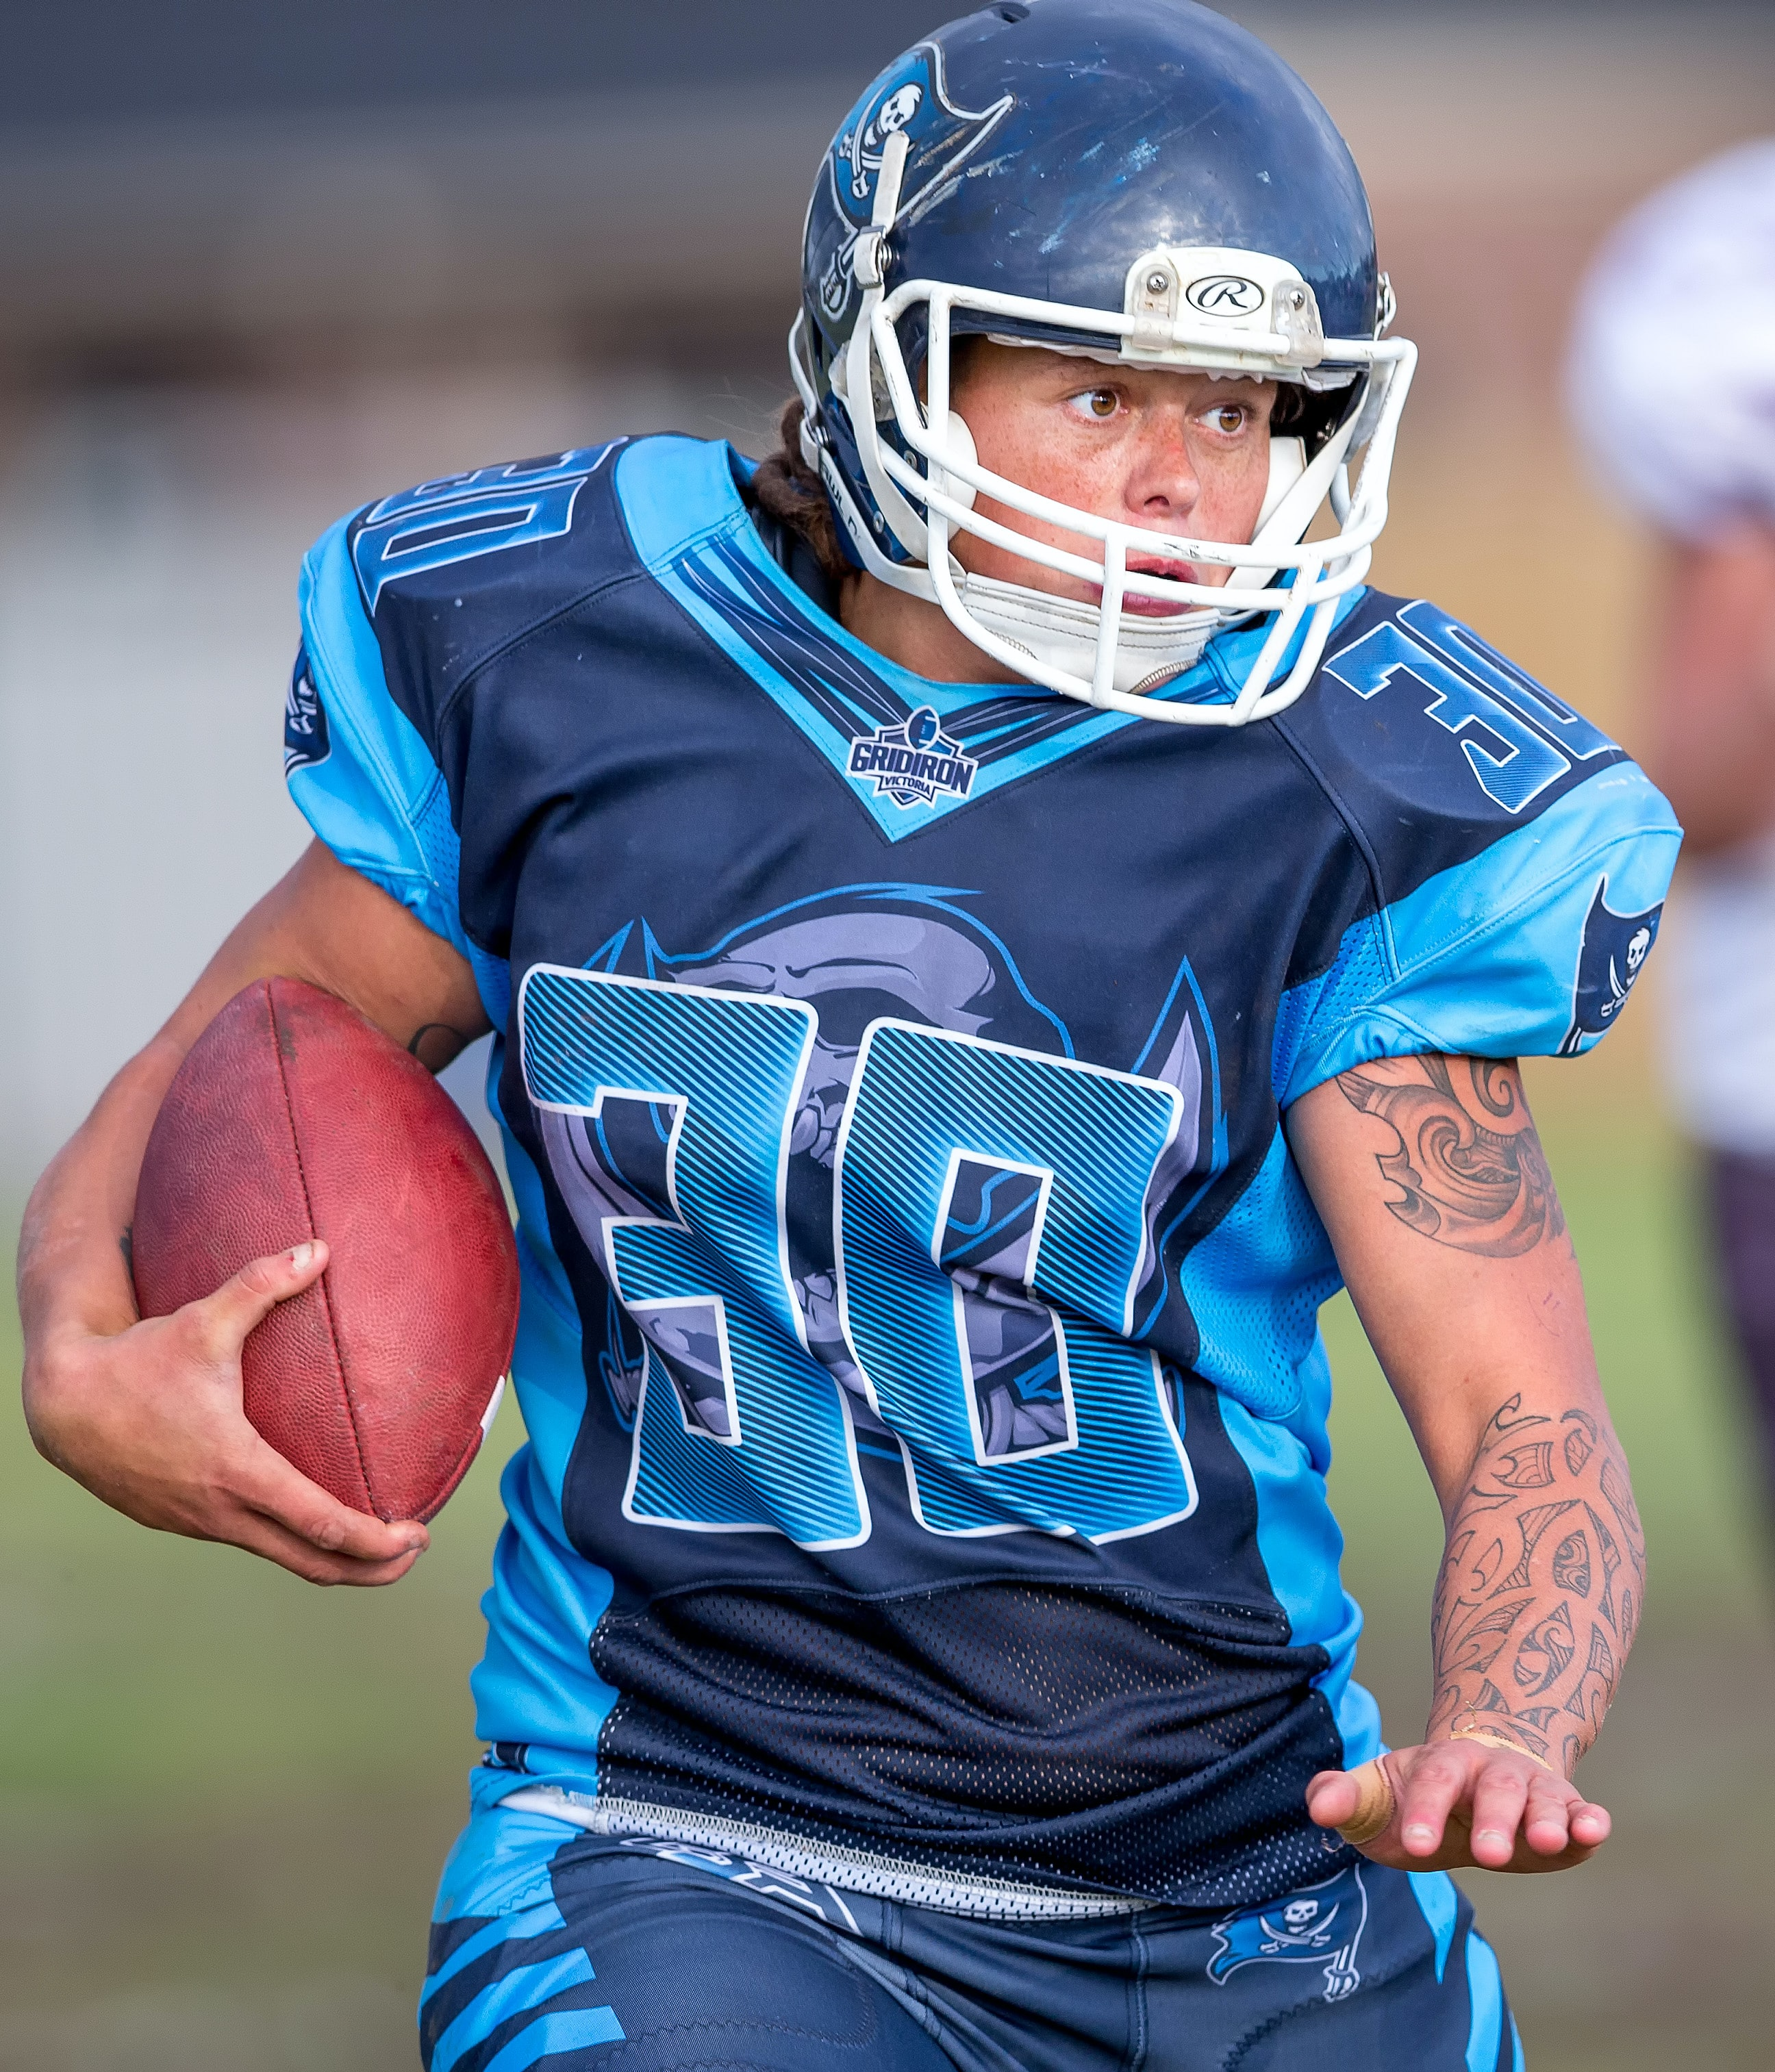 focus photo of person playing football holding ball while running